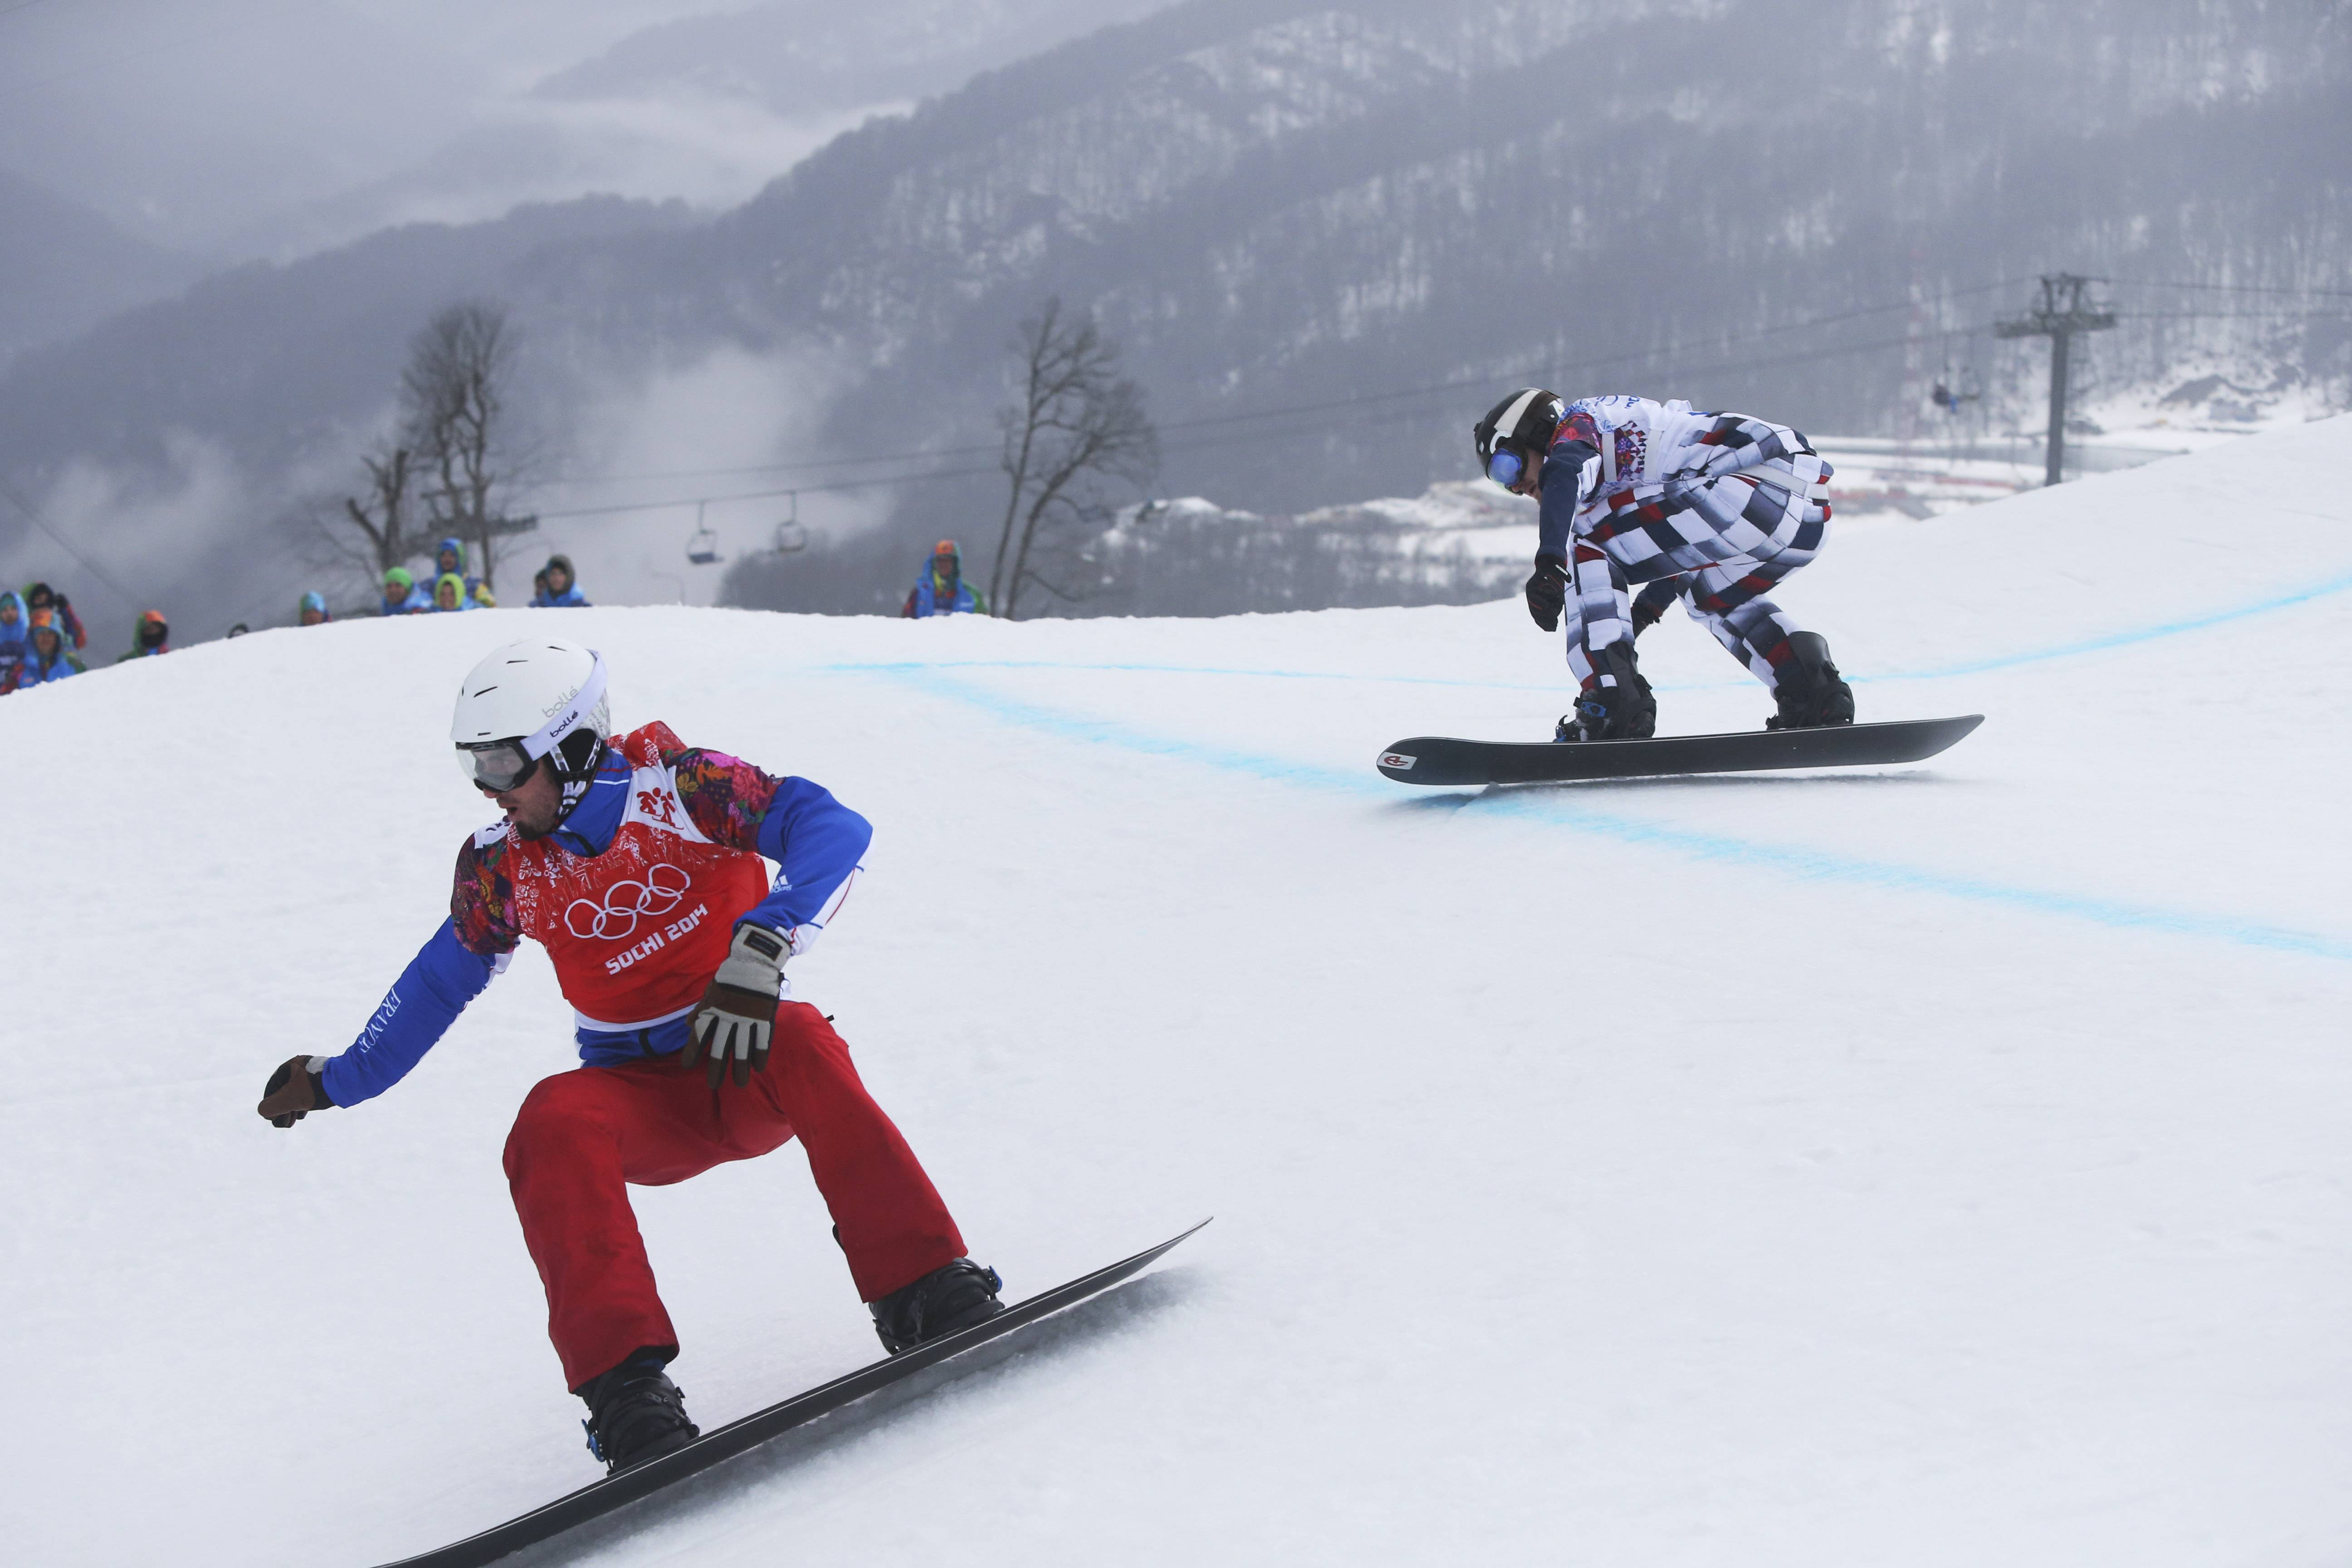 Gold medalist Pierre Vaultier of France leads silver medalist Nikolai Olyunin of Russia in the men's snowboard cross final at the Rosa Khutor Extreme Park Tuesday during the 2014 Winter Olympics in Krasnaya Polyana, Russia.